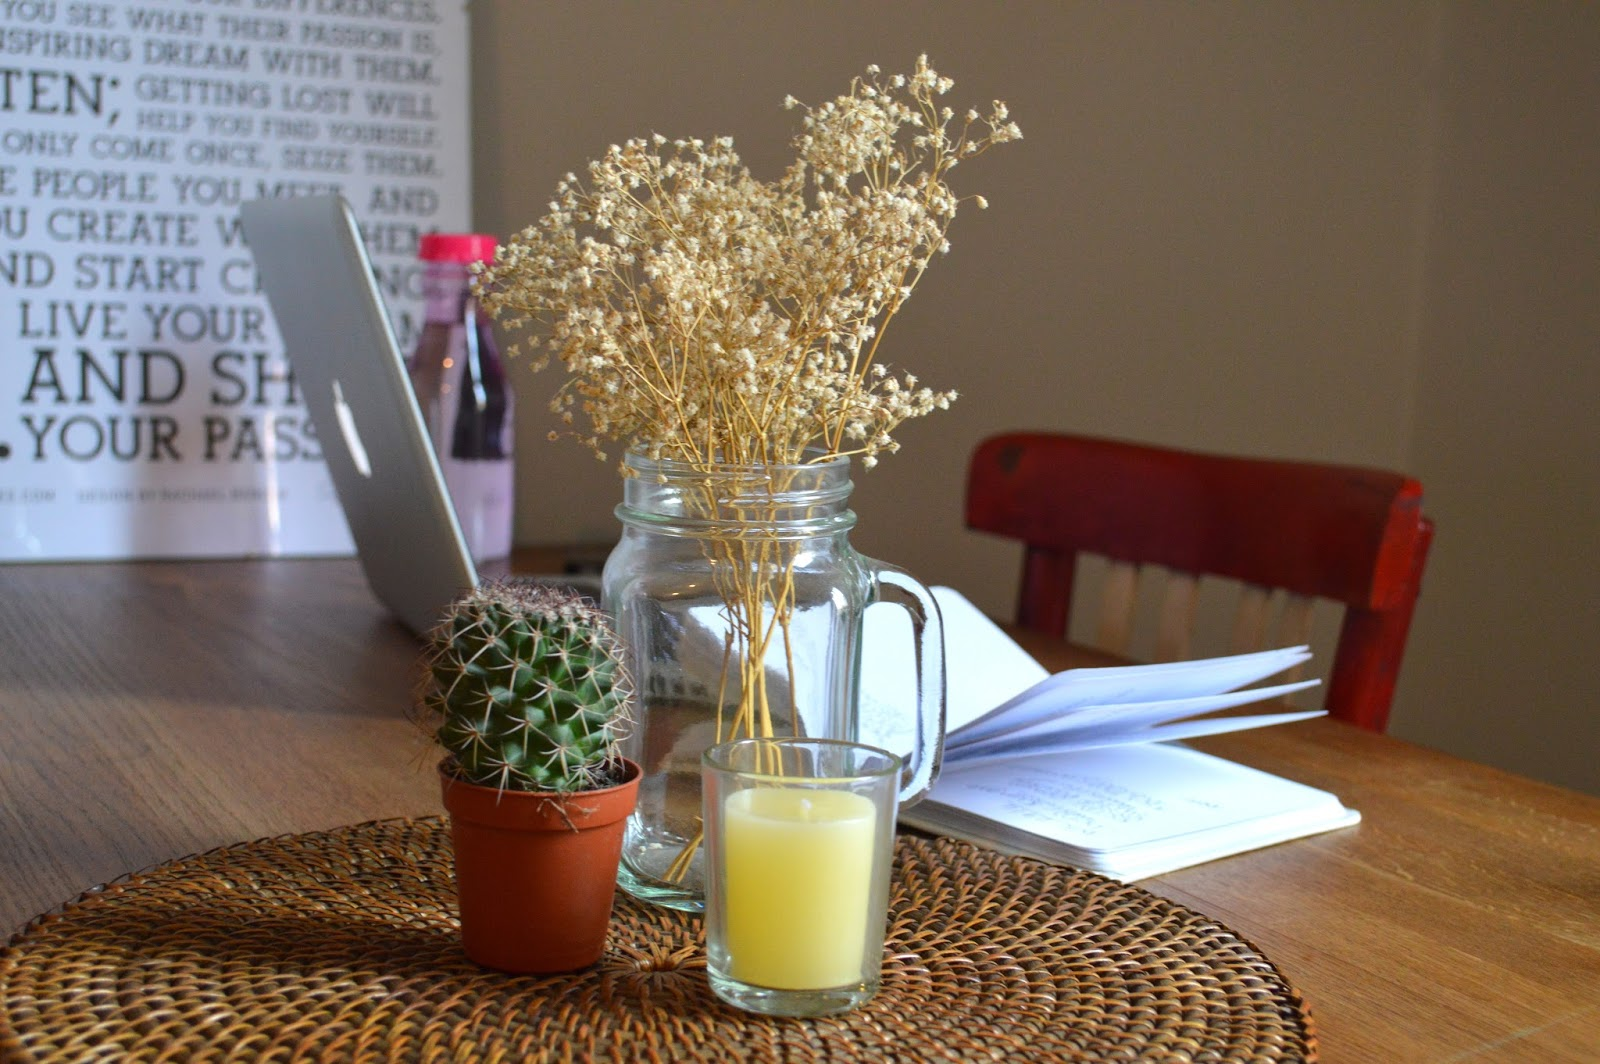 Cactus, jam jar and candle ornaments inspiration in Airbnb apartment Barcelona